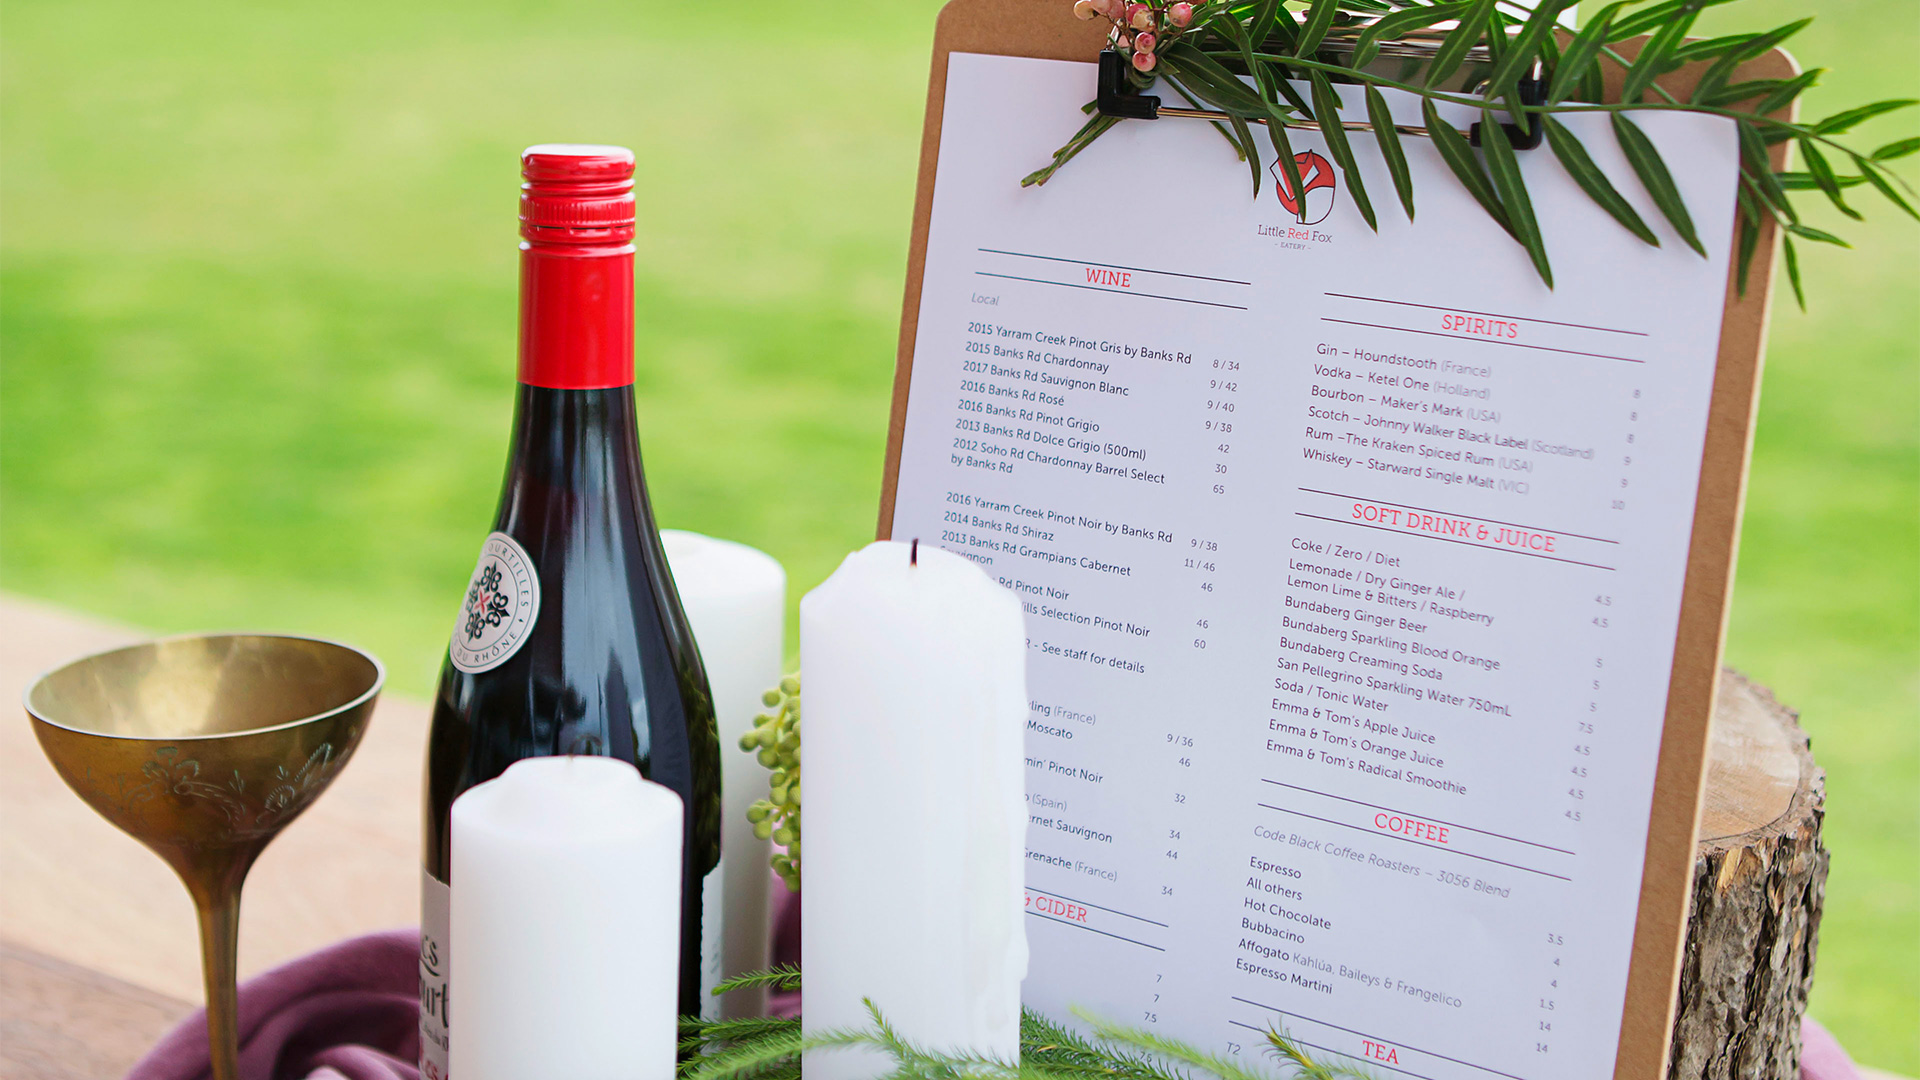 Little Red Fox Eatery menu in outdoor wedding setting